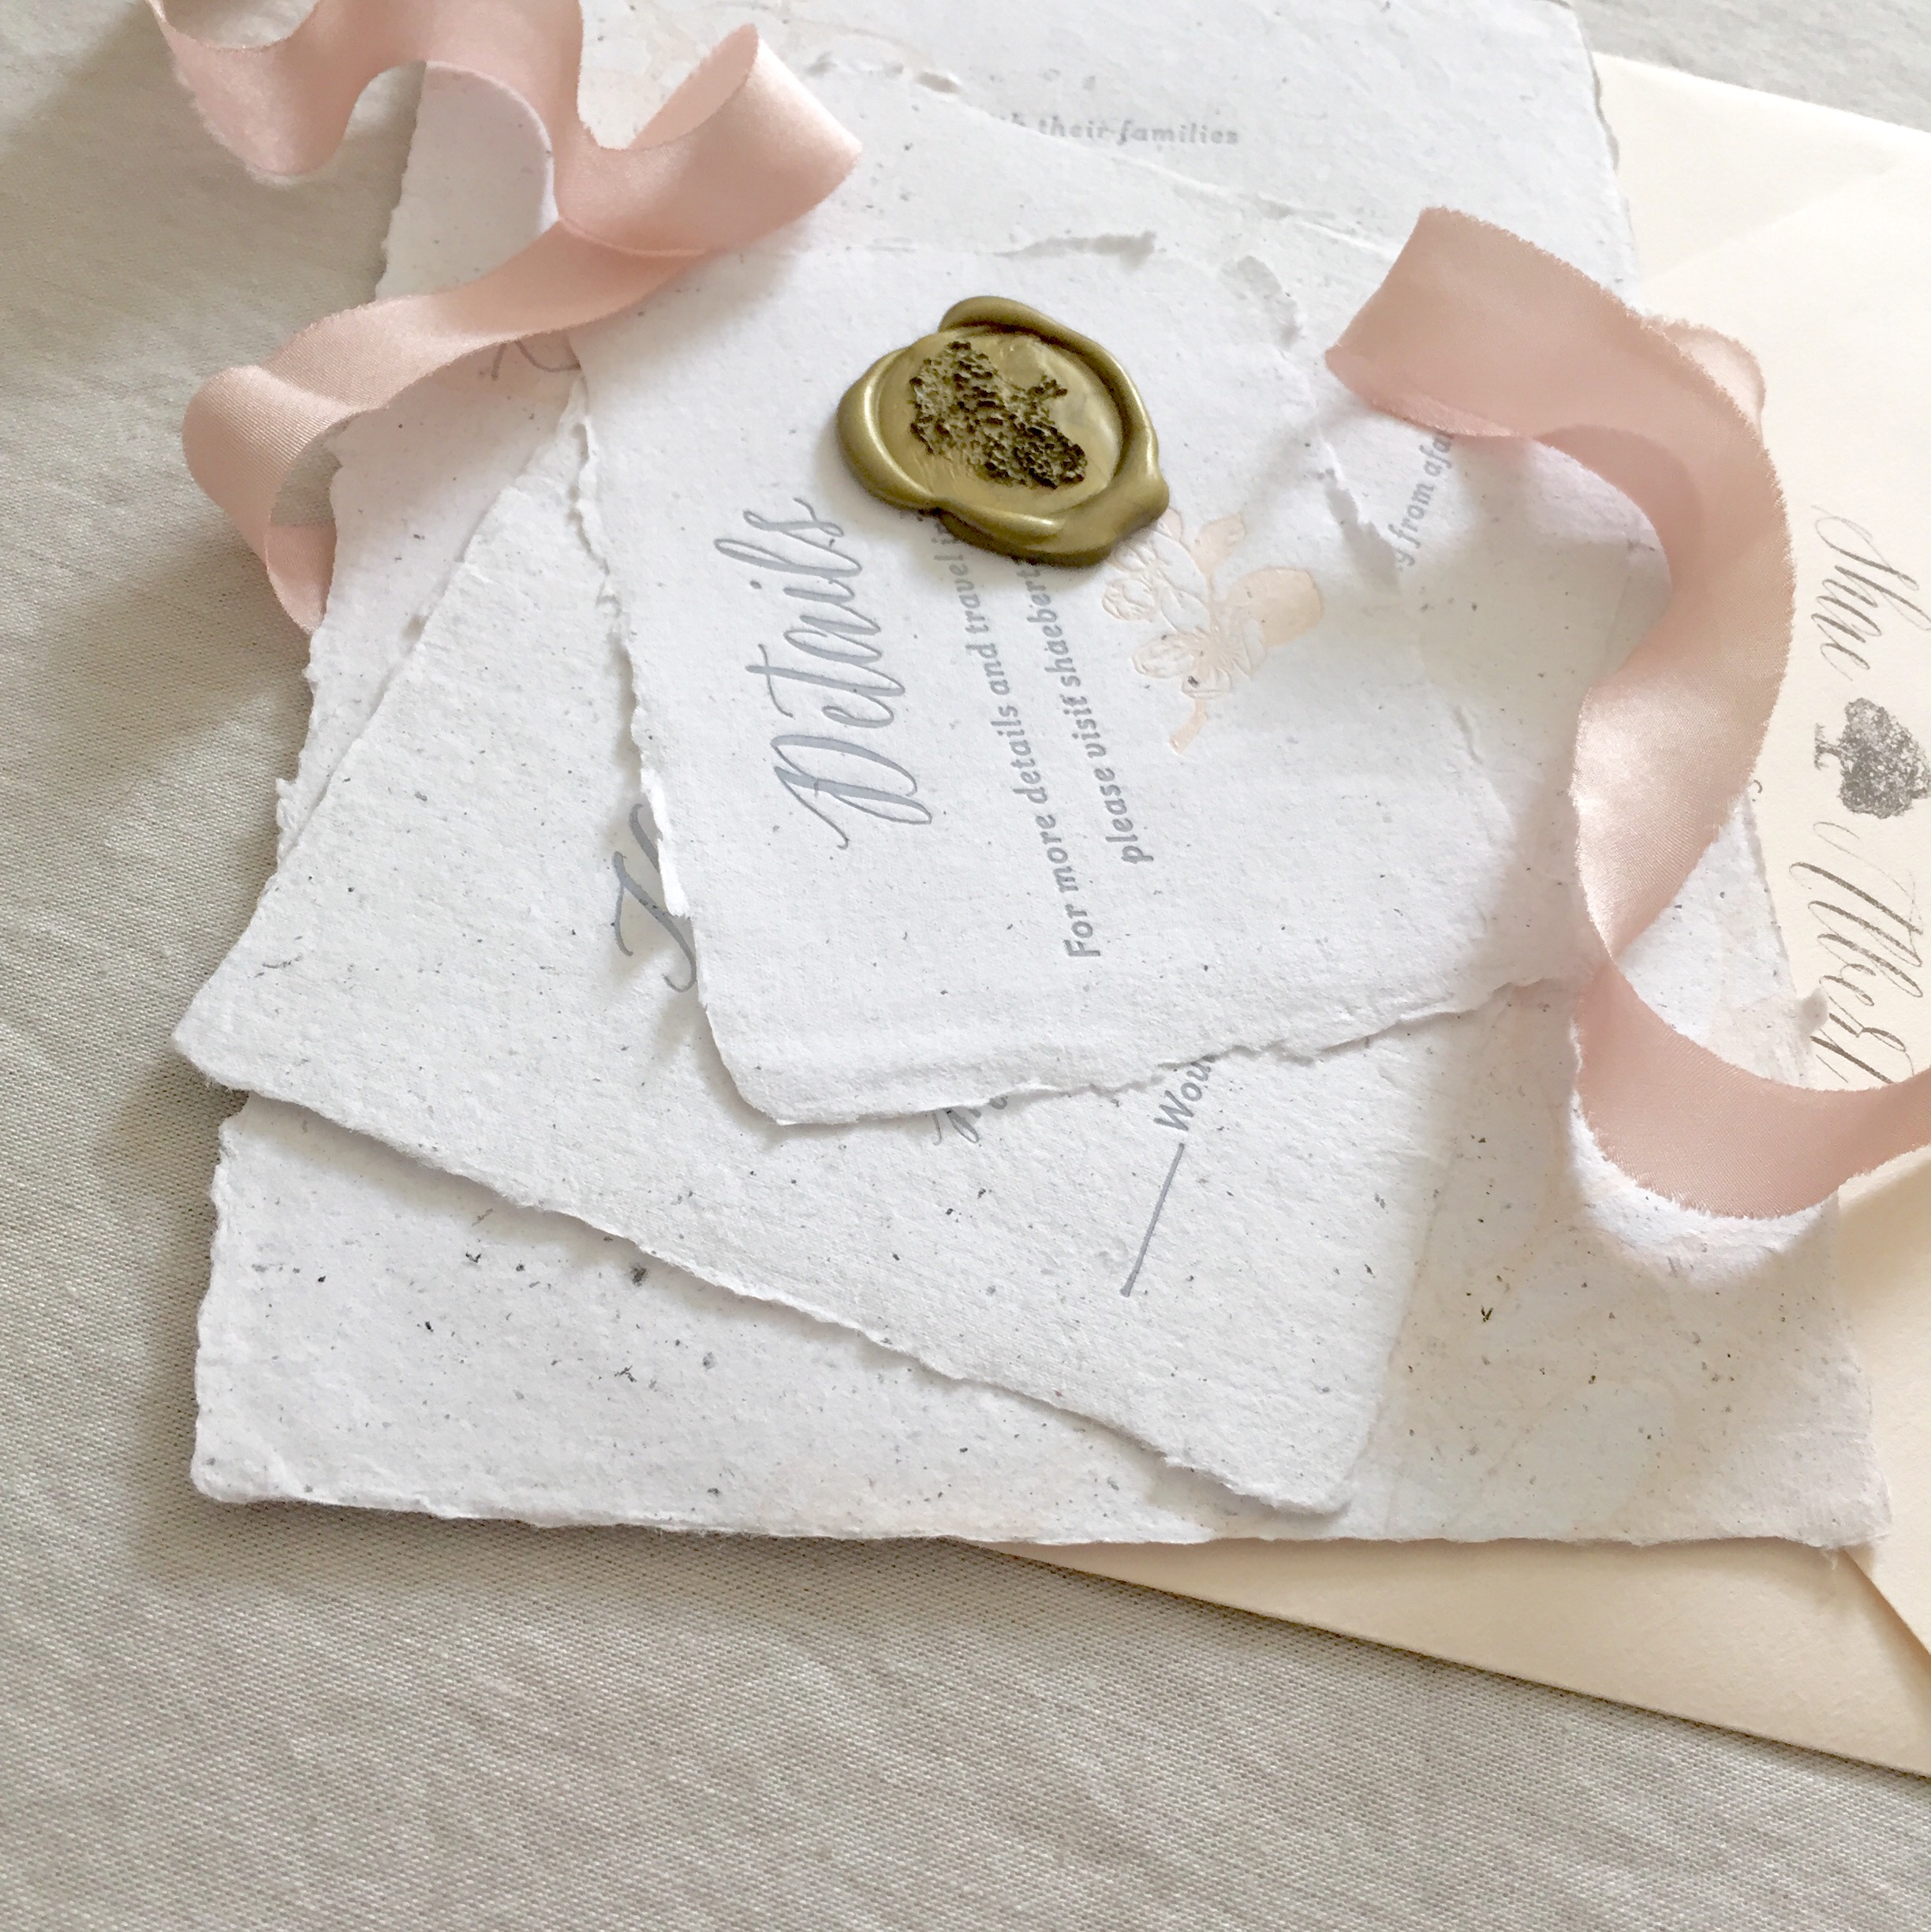 Maria_Bond_Design_Wedding_Invite_Handmade_Paper.jpg